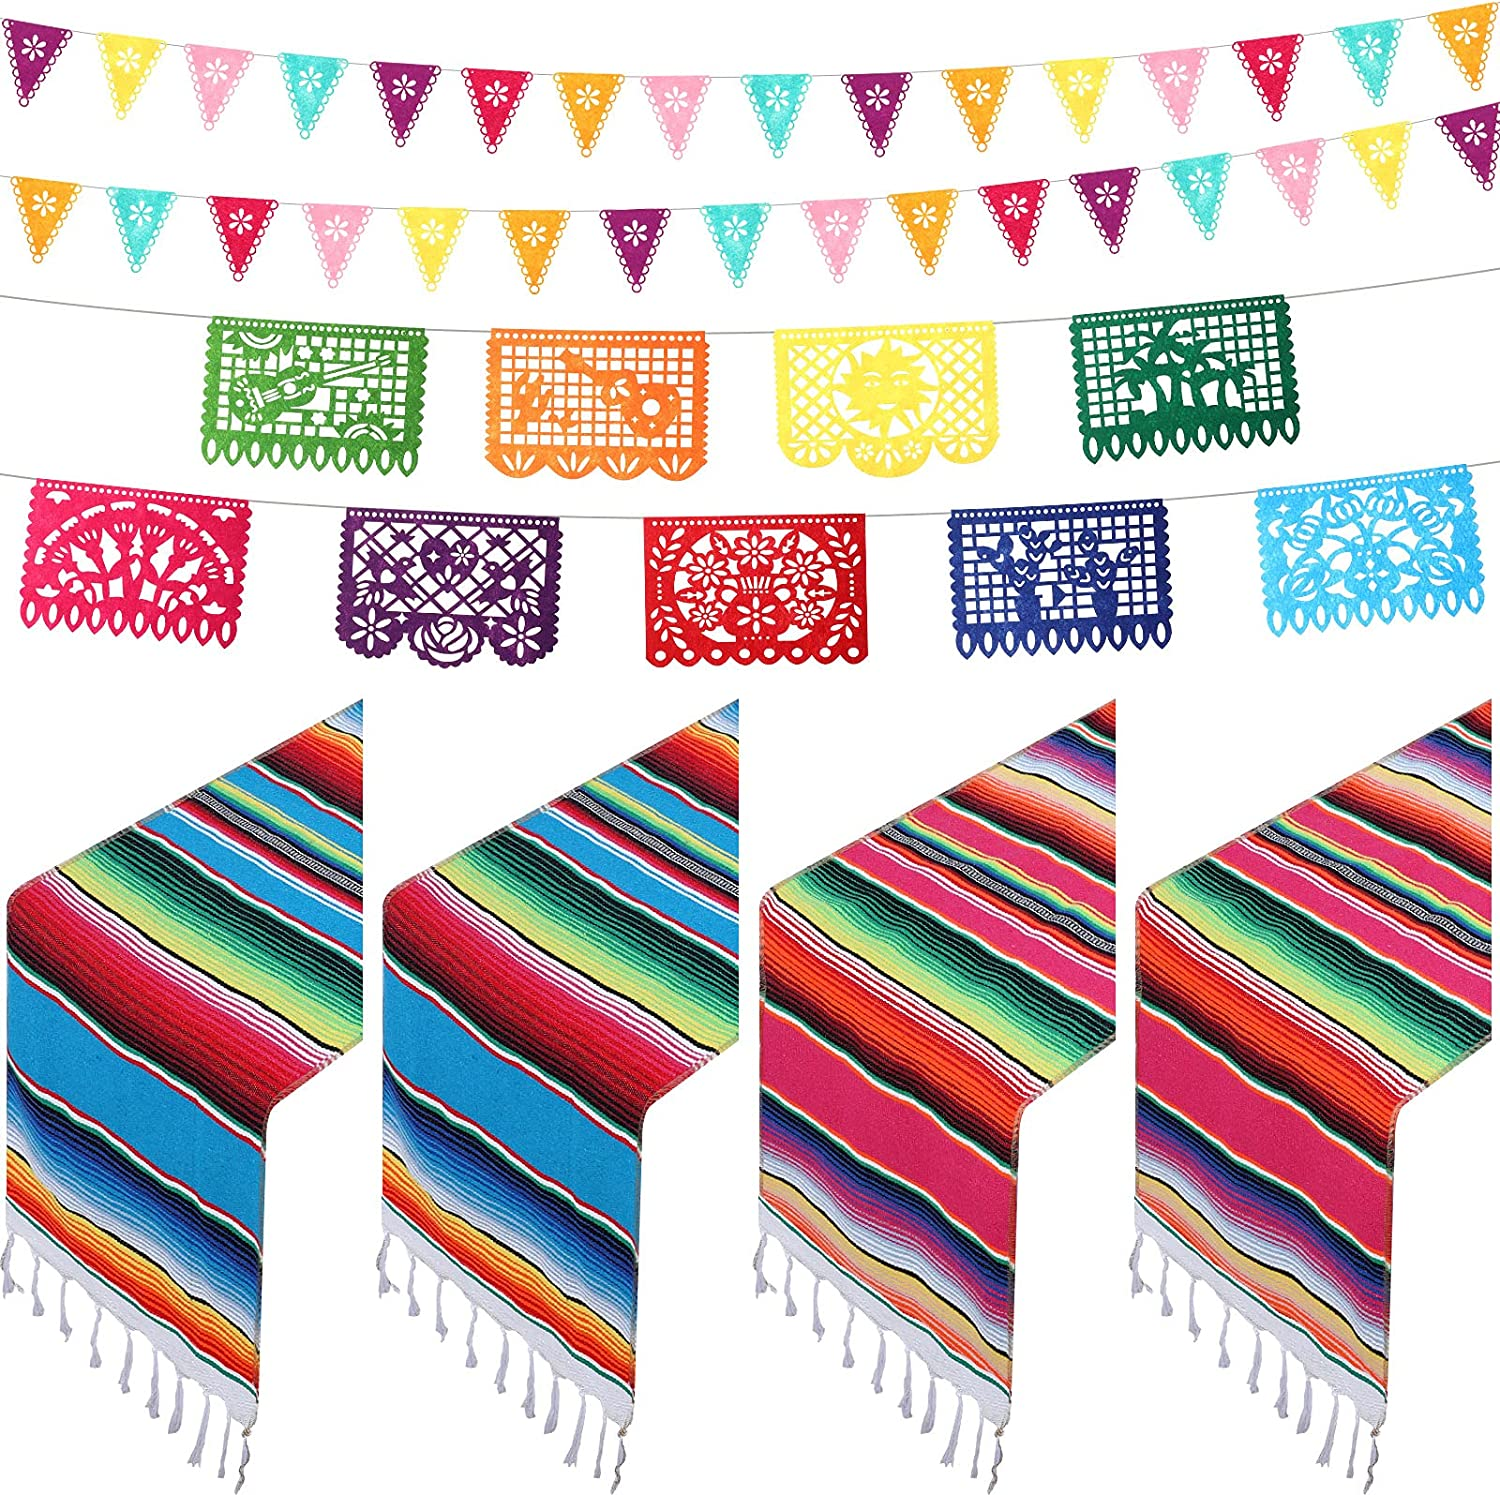 Max 71% OFF 7 Pieces Mexican Table Runner 110 Inch x 14 Serape Selling and selling